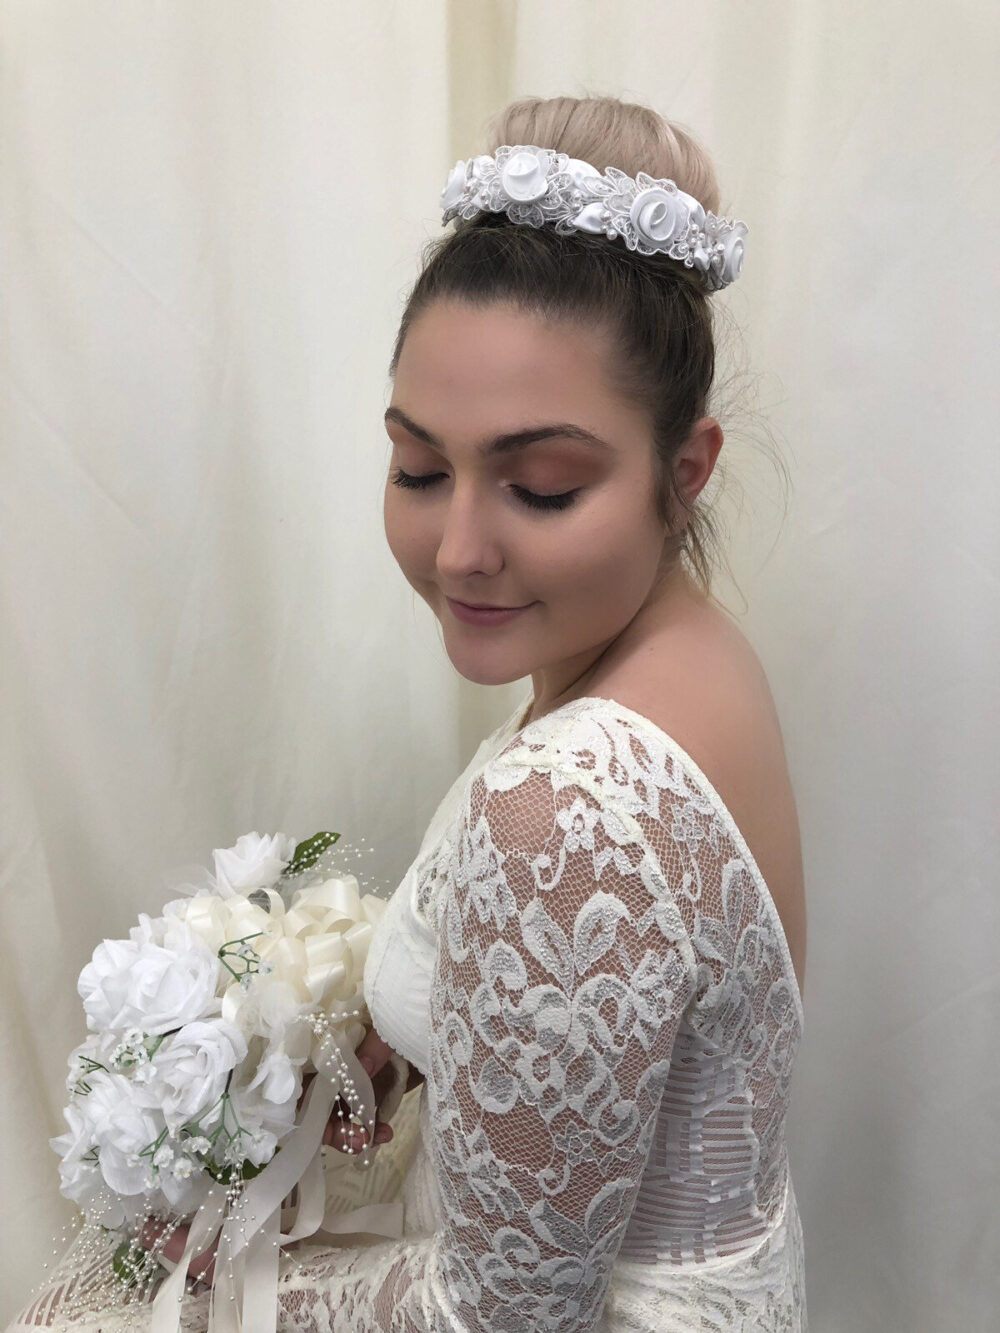 Satin & Tulle Rosette Halo, Wreath, Bridal Tiara With Lace Featured Appliques, Detailed Pearls Leaves Wedding Headpiece